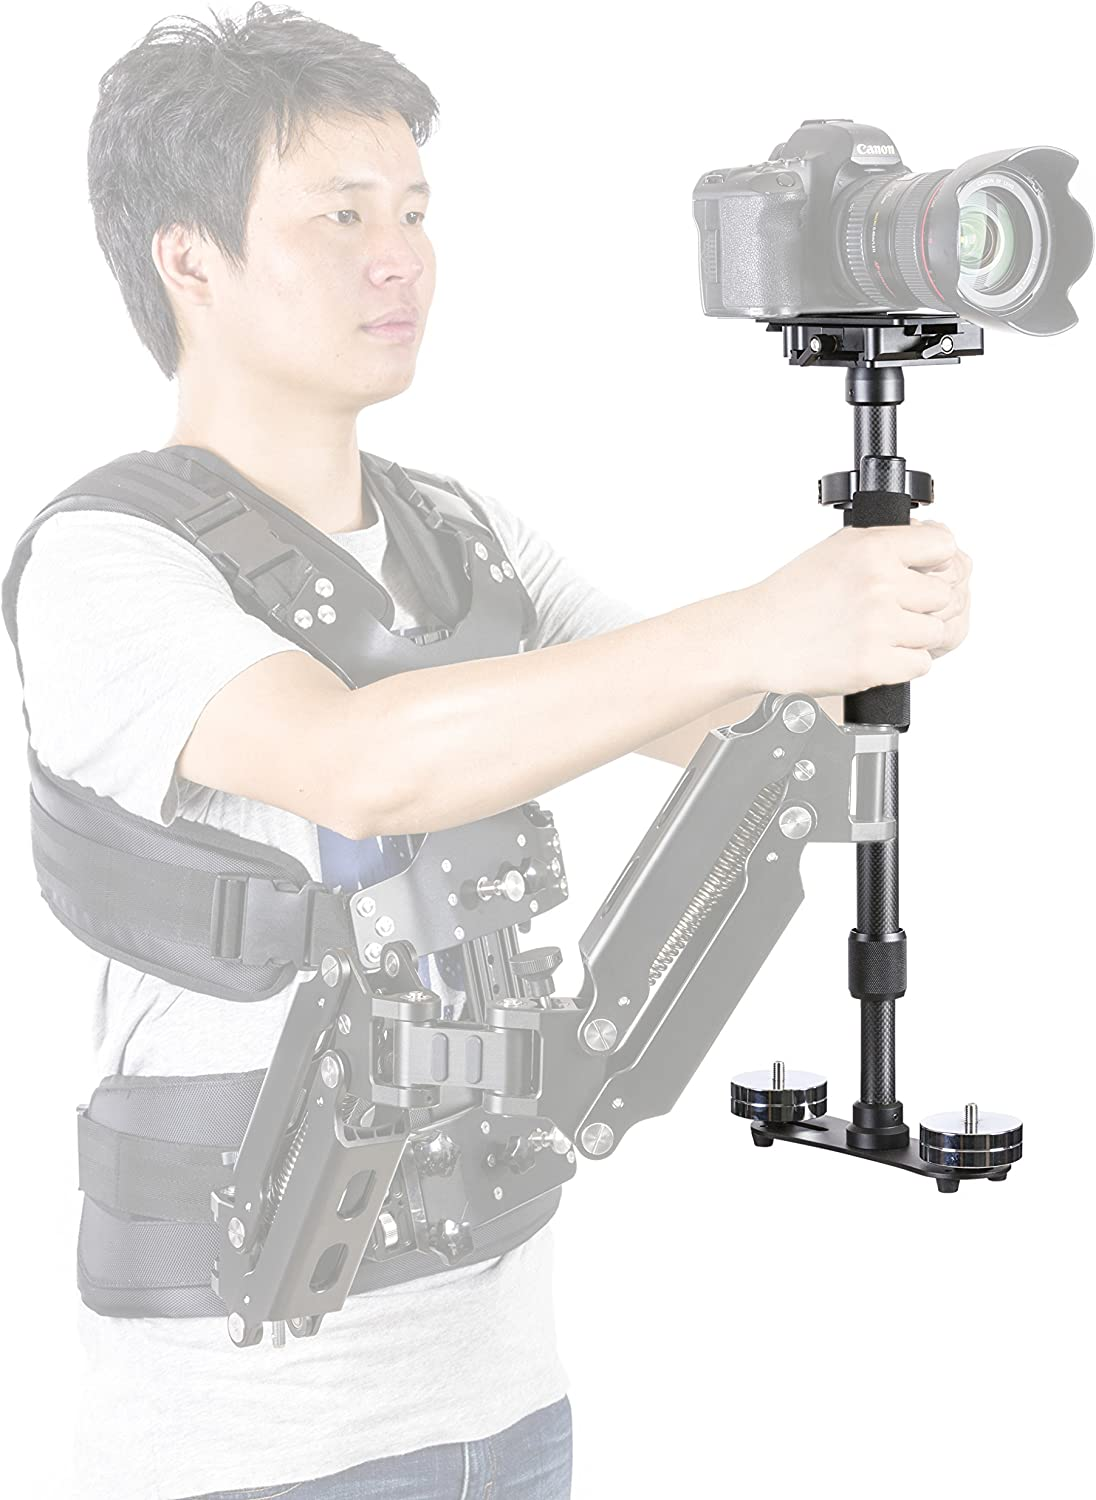 Quick-Release Platform Movo VS9 Handheld Carbon Fiber Video Stabilizer System with Micro-Balancing Adjustments Chrome Counterweights for DSLR Cameras and Camcorders